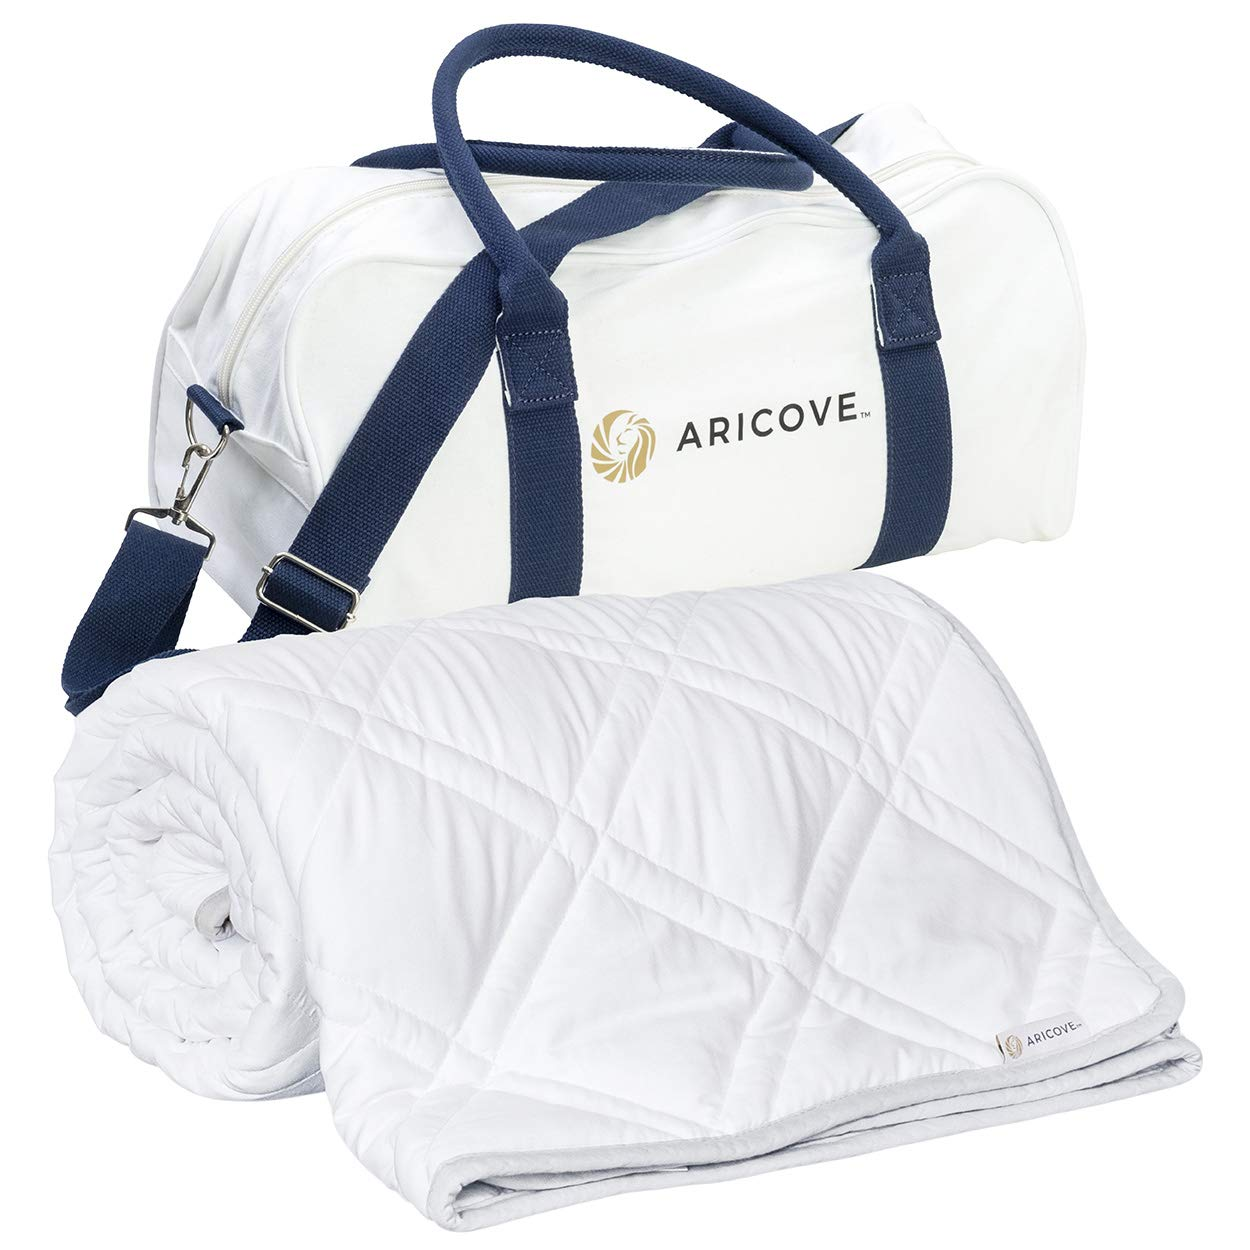 "Aricove Cooling Weighted Blanket Adult | Certified Premium Bamboo Viscose | 48""x72"" 